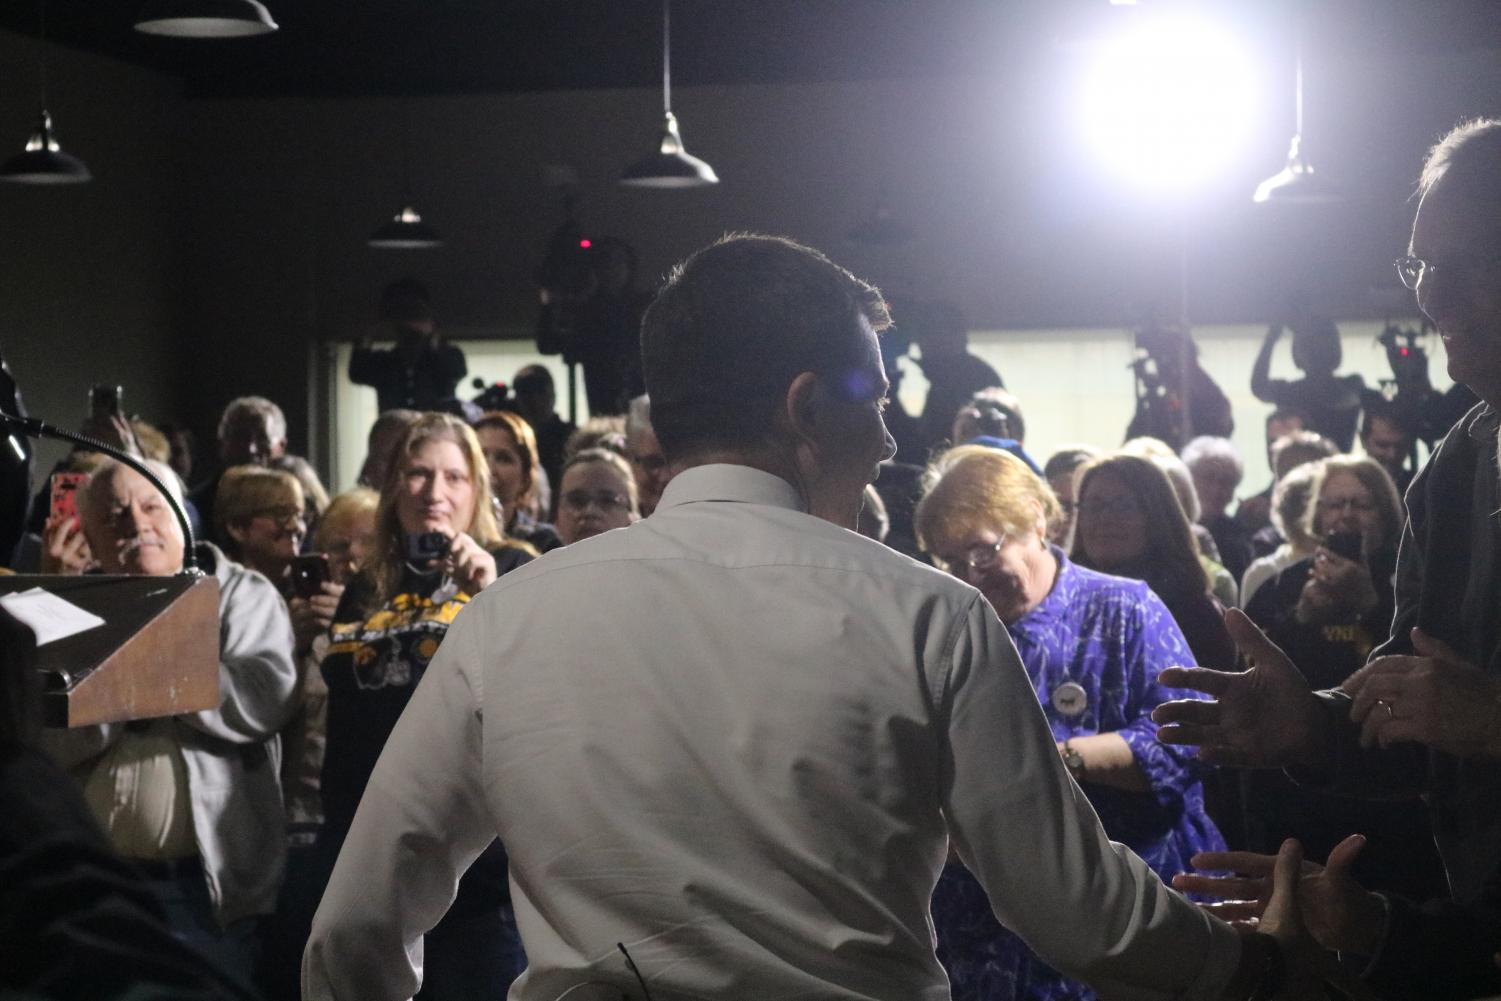 Mayor Pete Buttigieg approaches the podium. The event was hosted at The Venue in downtown Atlantic.